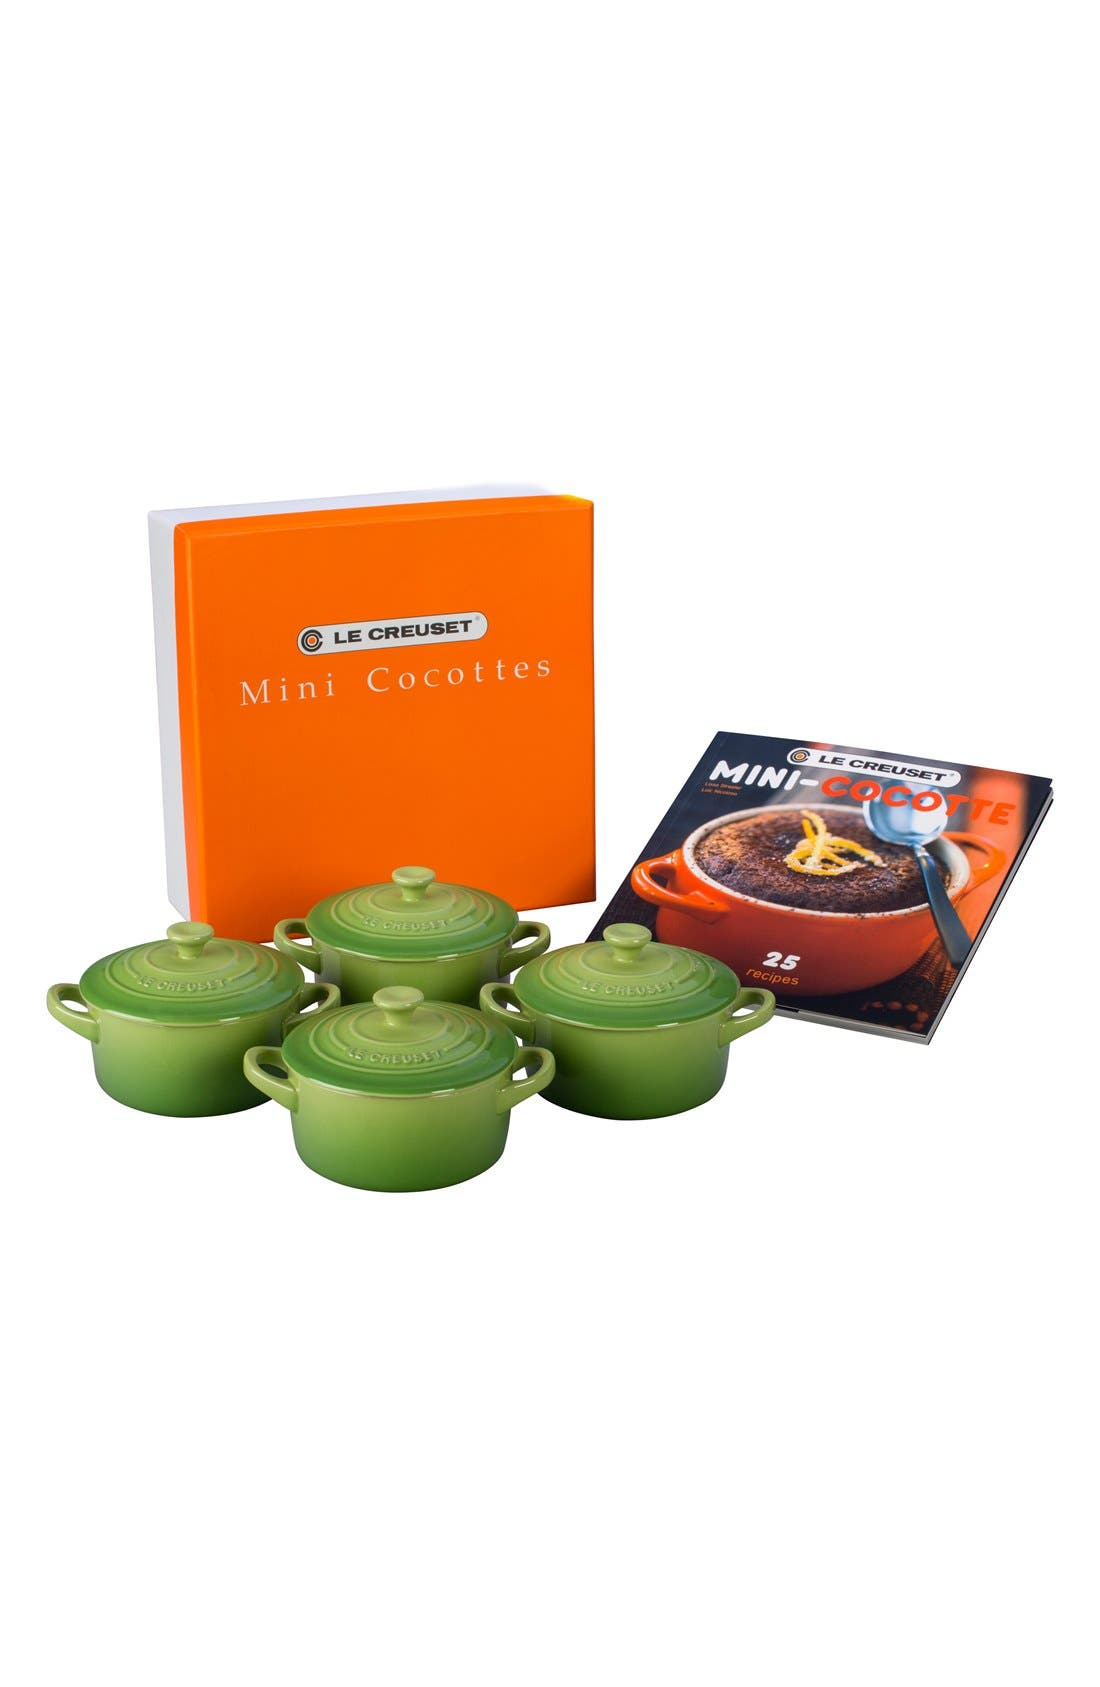 Le Creuset Four Mini Cocottes with Cookbook